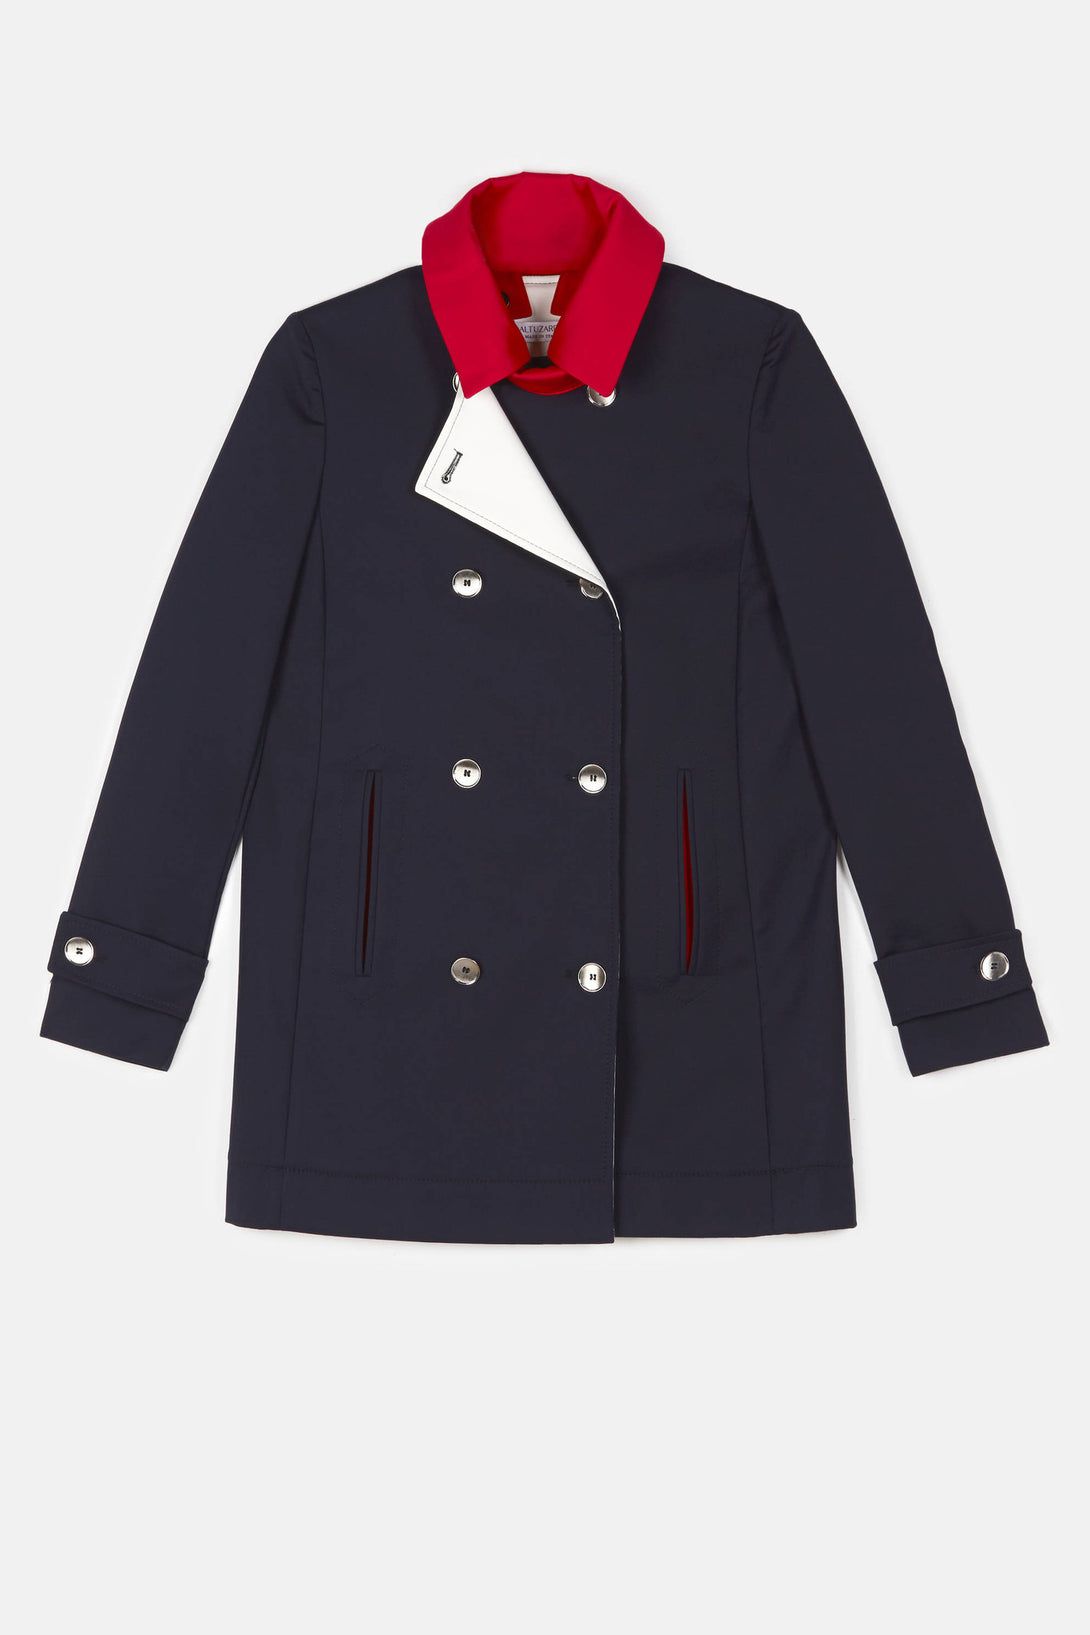 Ulysses Peacoat - Navy w/Red